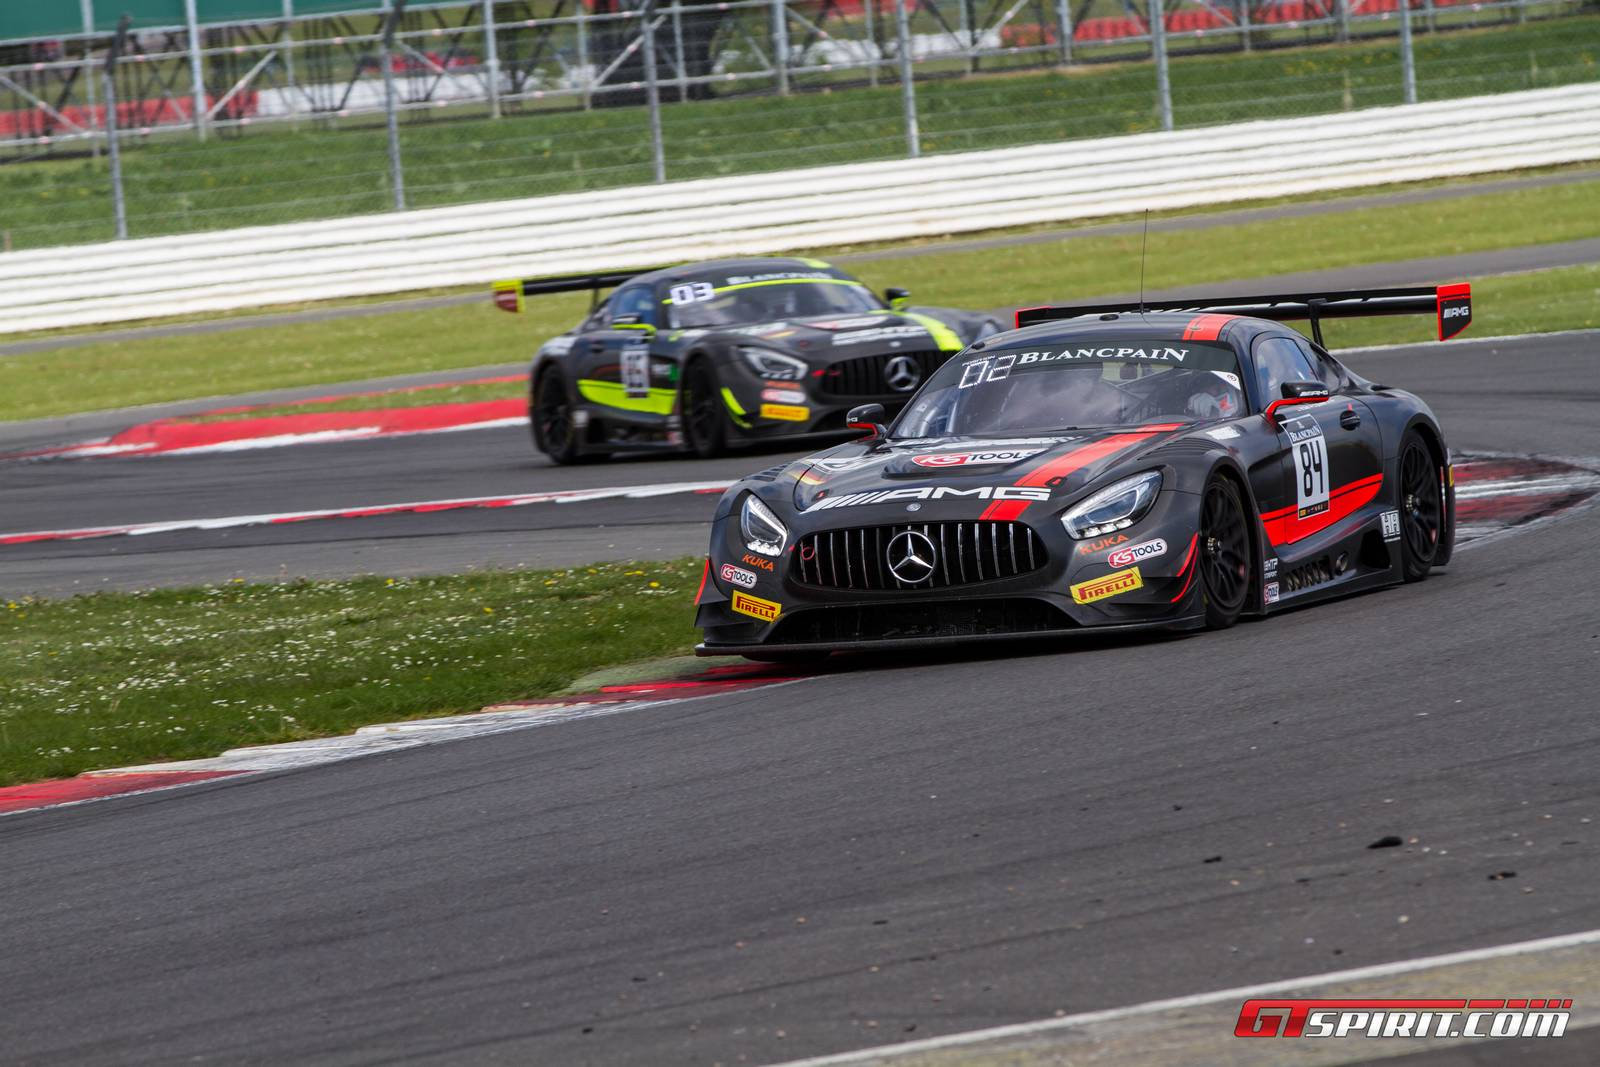 Blancpain GT: Mercedes-AMG GT3s Dominate Silverstone with 2 Wins ...